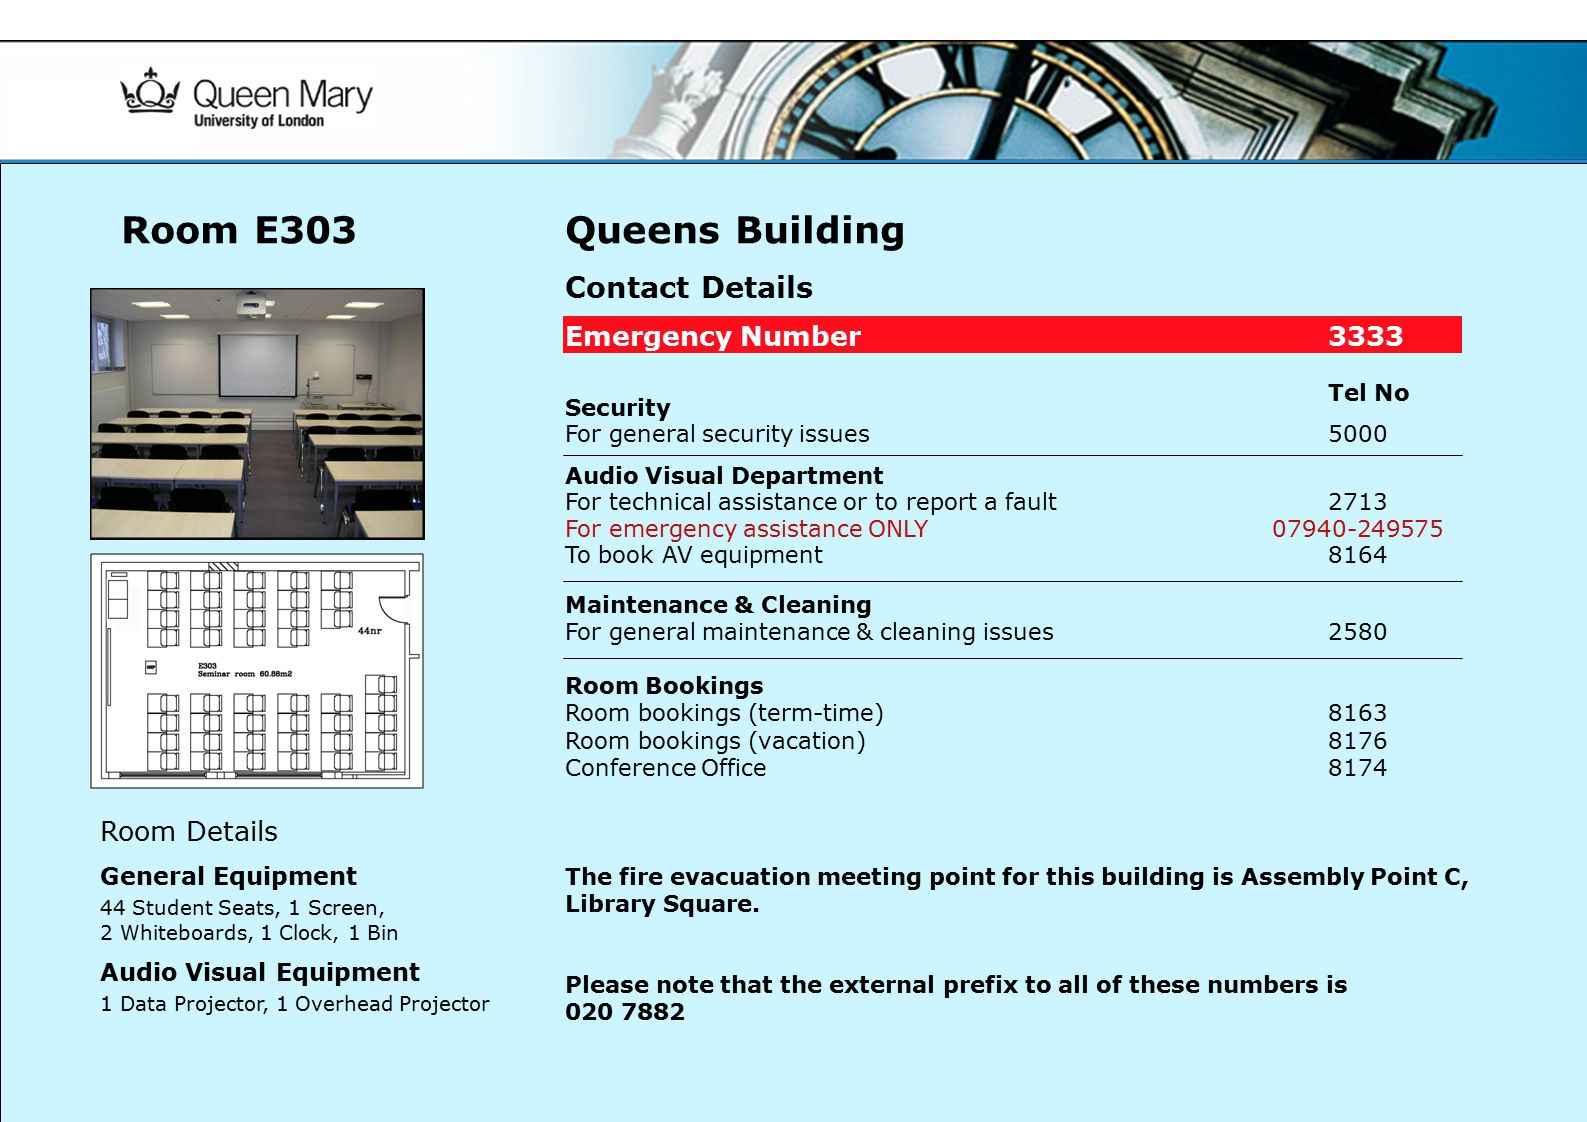 Queens Building Contact Details Emergency Number3333 Tel No Security For general security issues 5000 Audio Visual Department For technical assistance or to report a fault2713 For emergency assistance ONLY 07940-249575 To book AV equipment 8164 Maintenance & Cleaning For general maintenance & cleaning issues2580 Room Bookings Room bookings (term-time)8163 Room bookings (vacation) 8176 Conference Office8174 The fire evacuation meeting point for this building is Assembly Point C, Library Square.